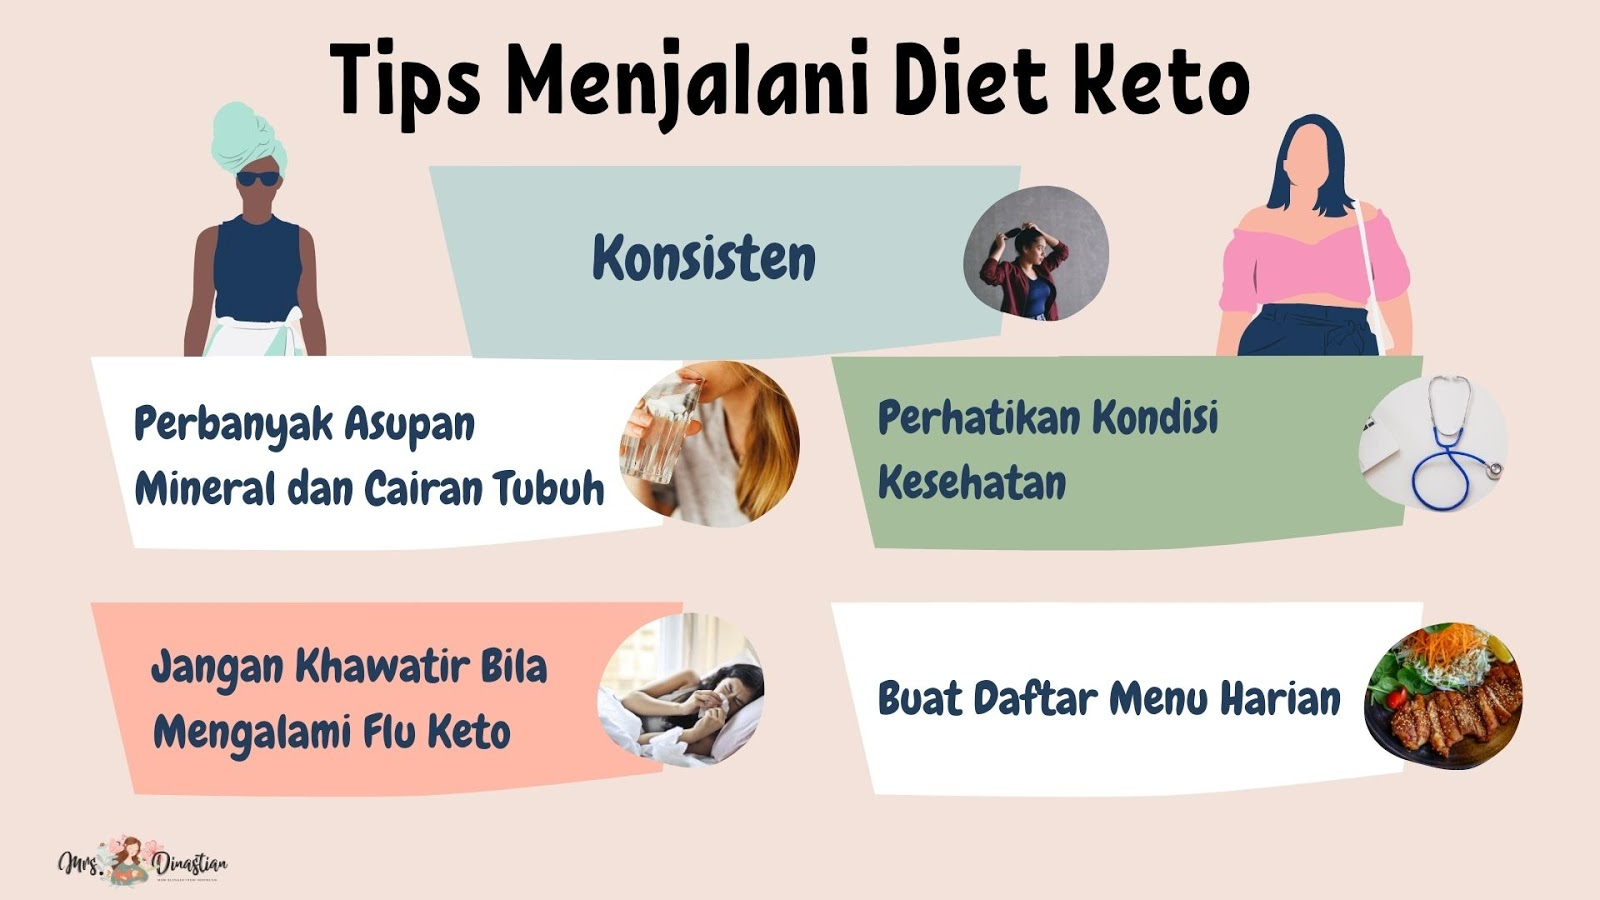 Tips Menjalani Diet Keto